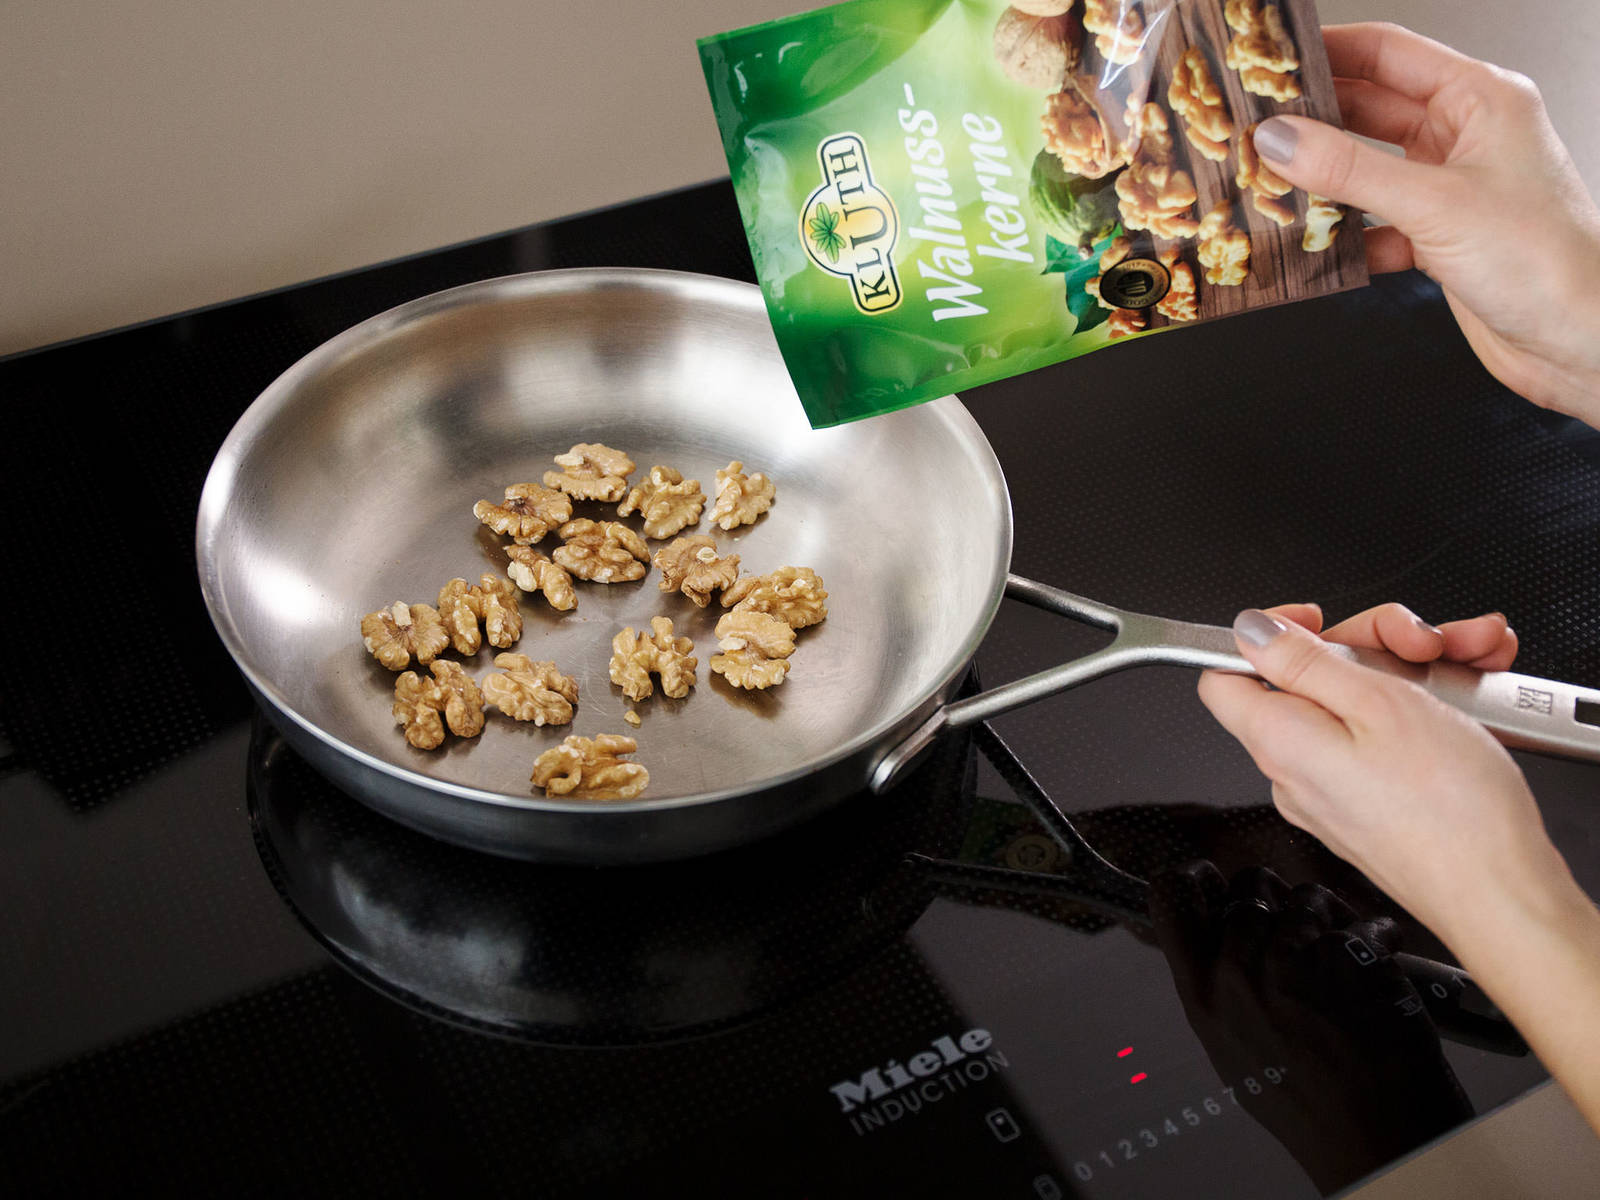 Toast walnuts in a frying pan for approx. 5 min., or until golden all over. Transfer to a cutting board and chop, then set aside.